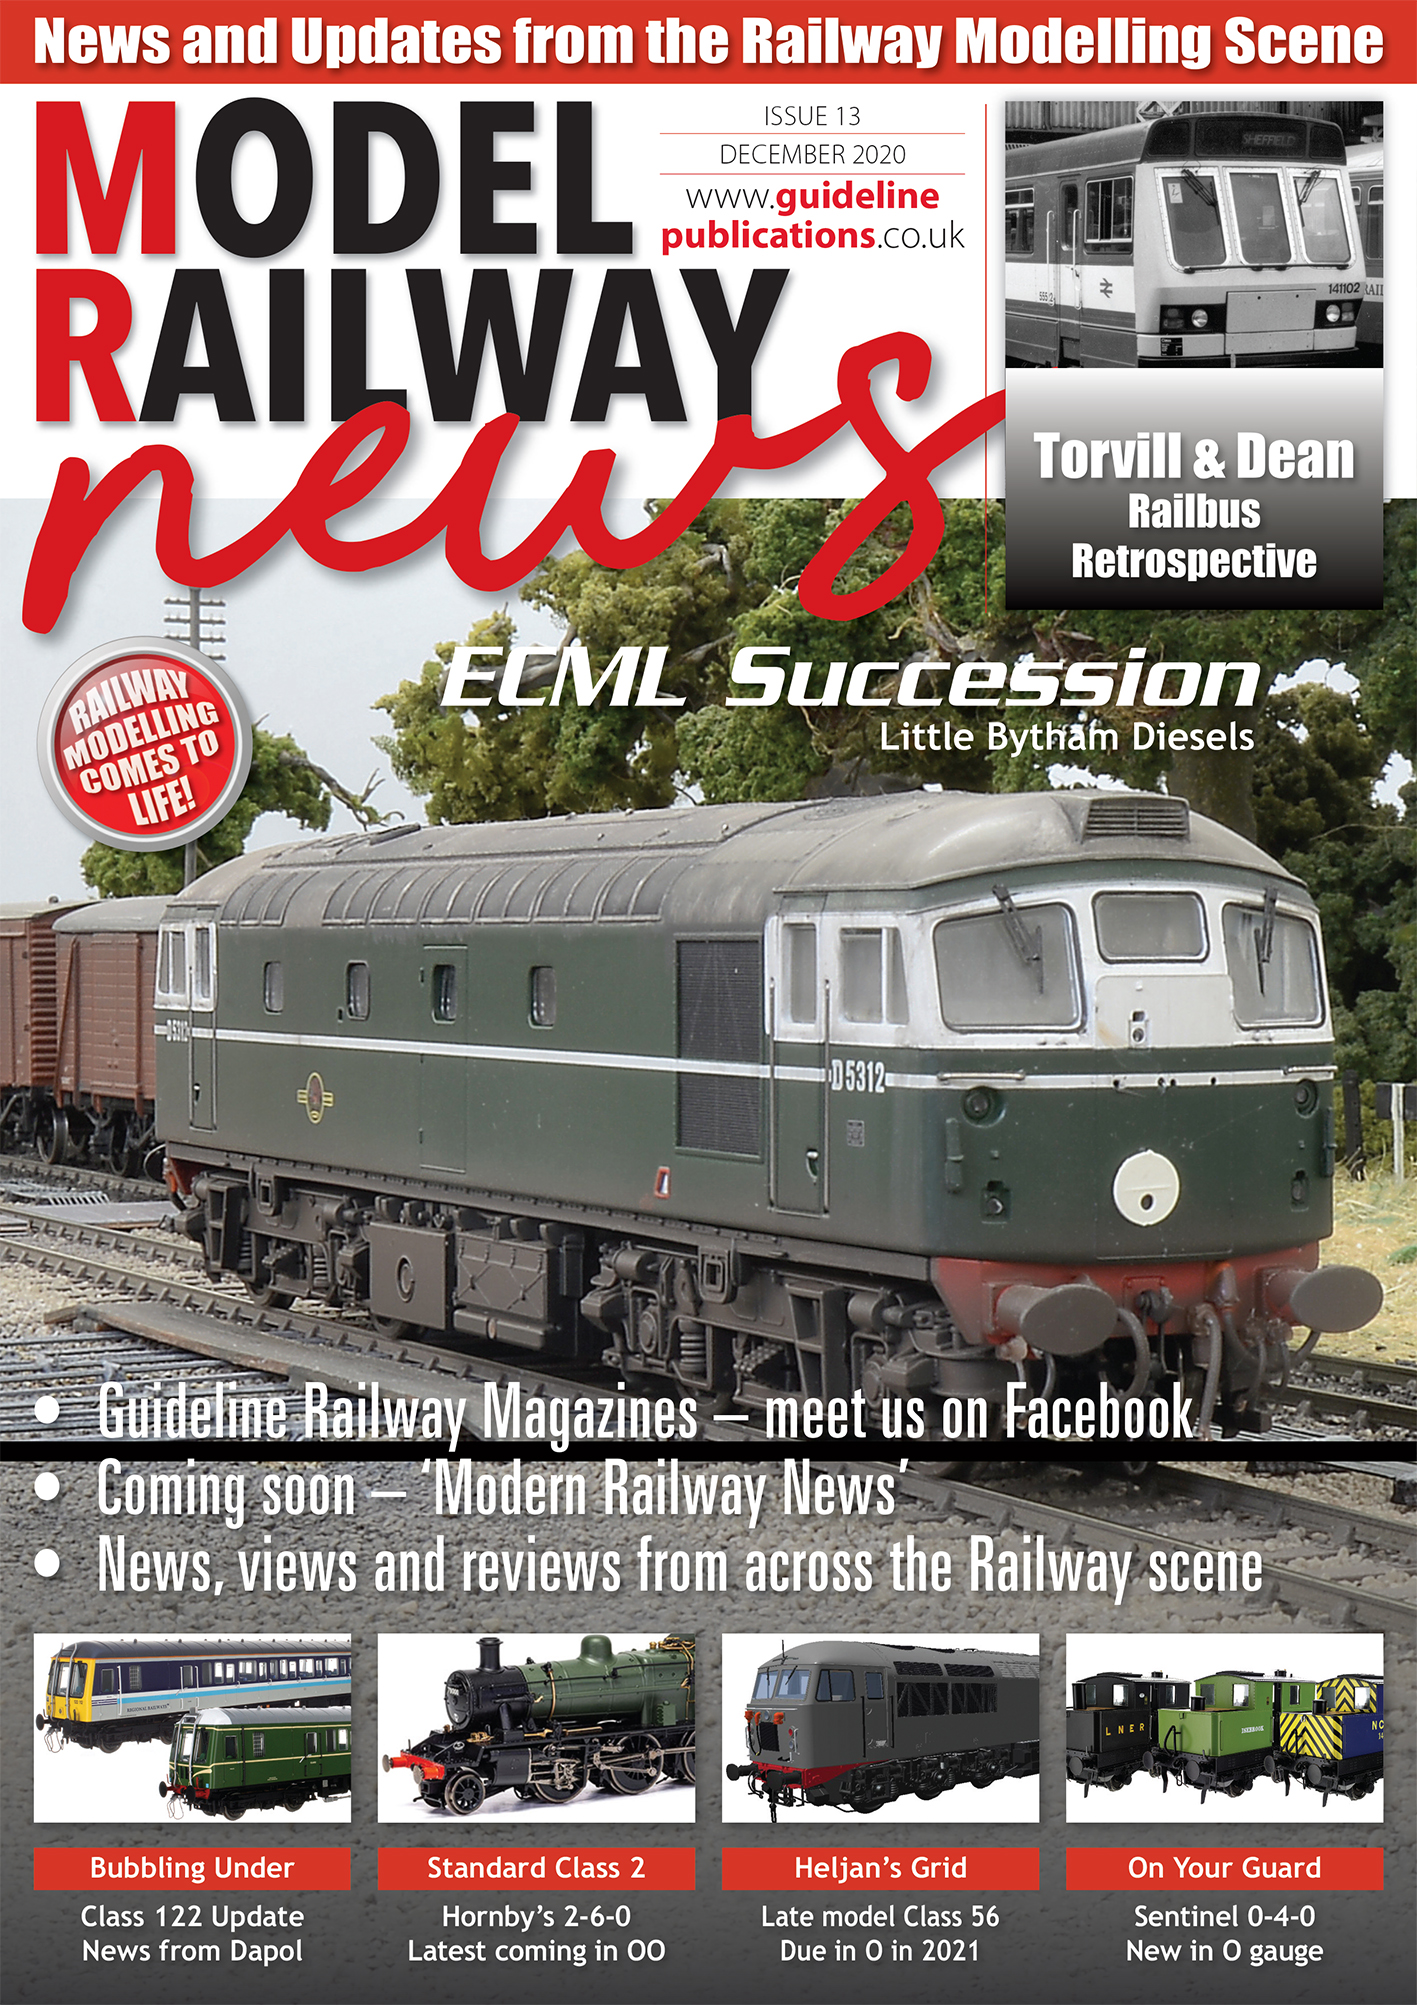 Guideline Publications Model Railway News issue 13 FREE DIGITAL ISSUE - December